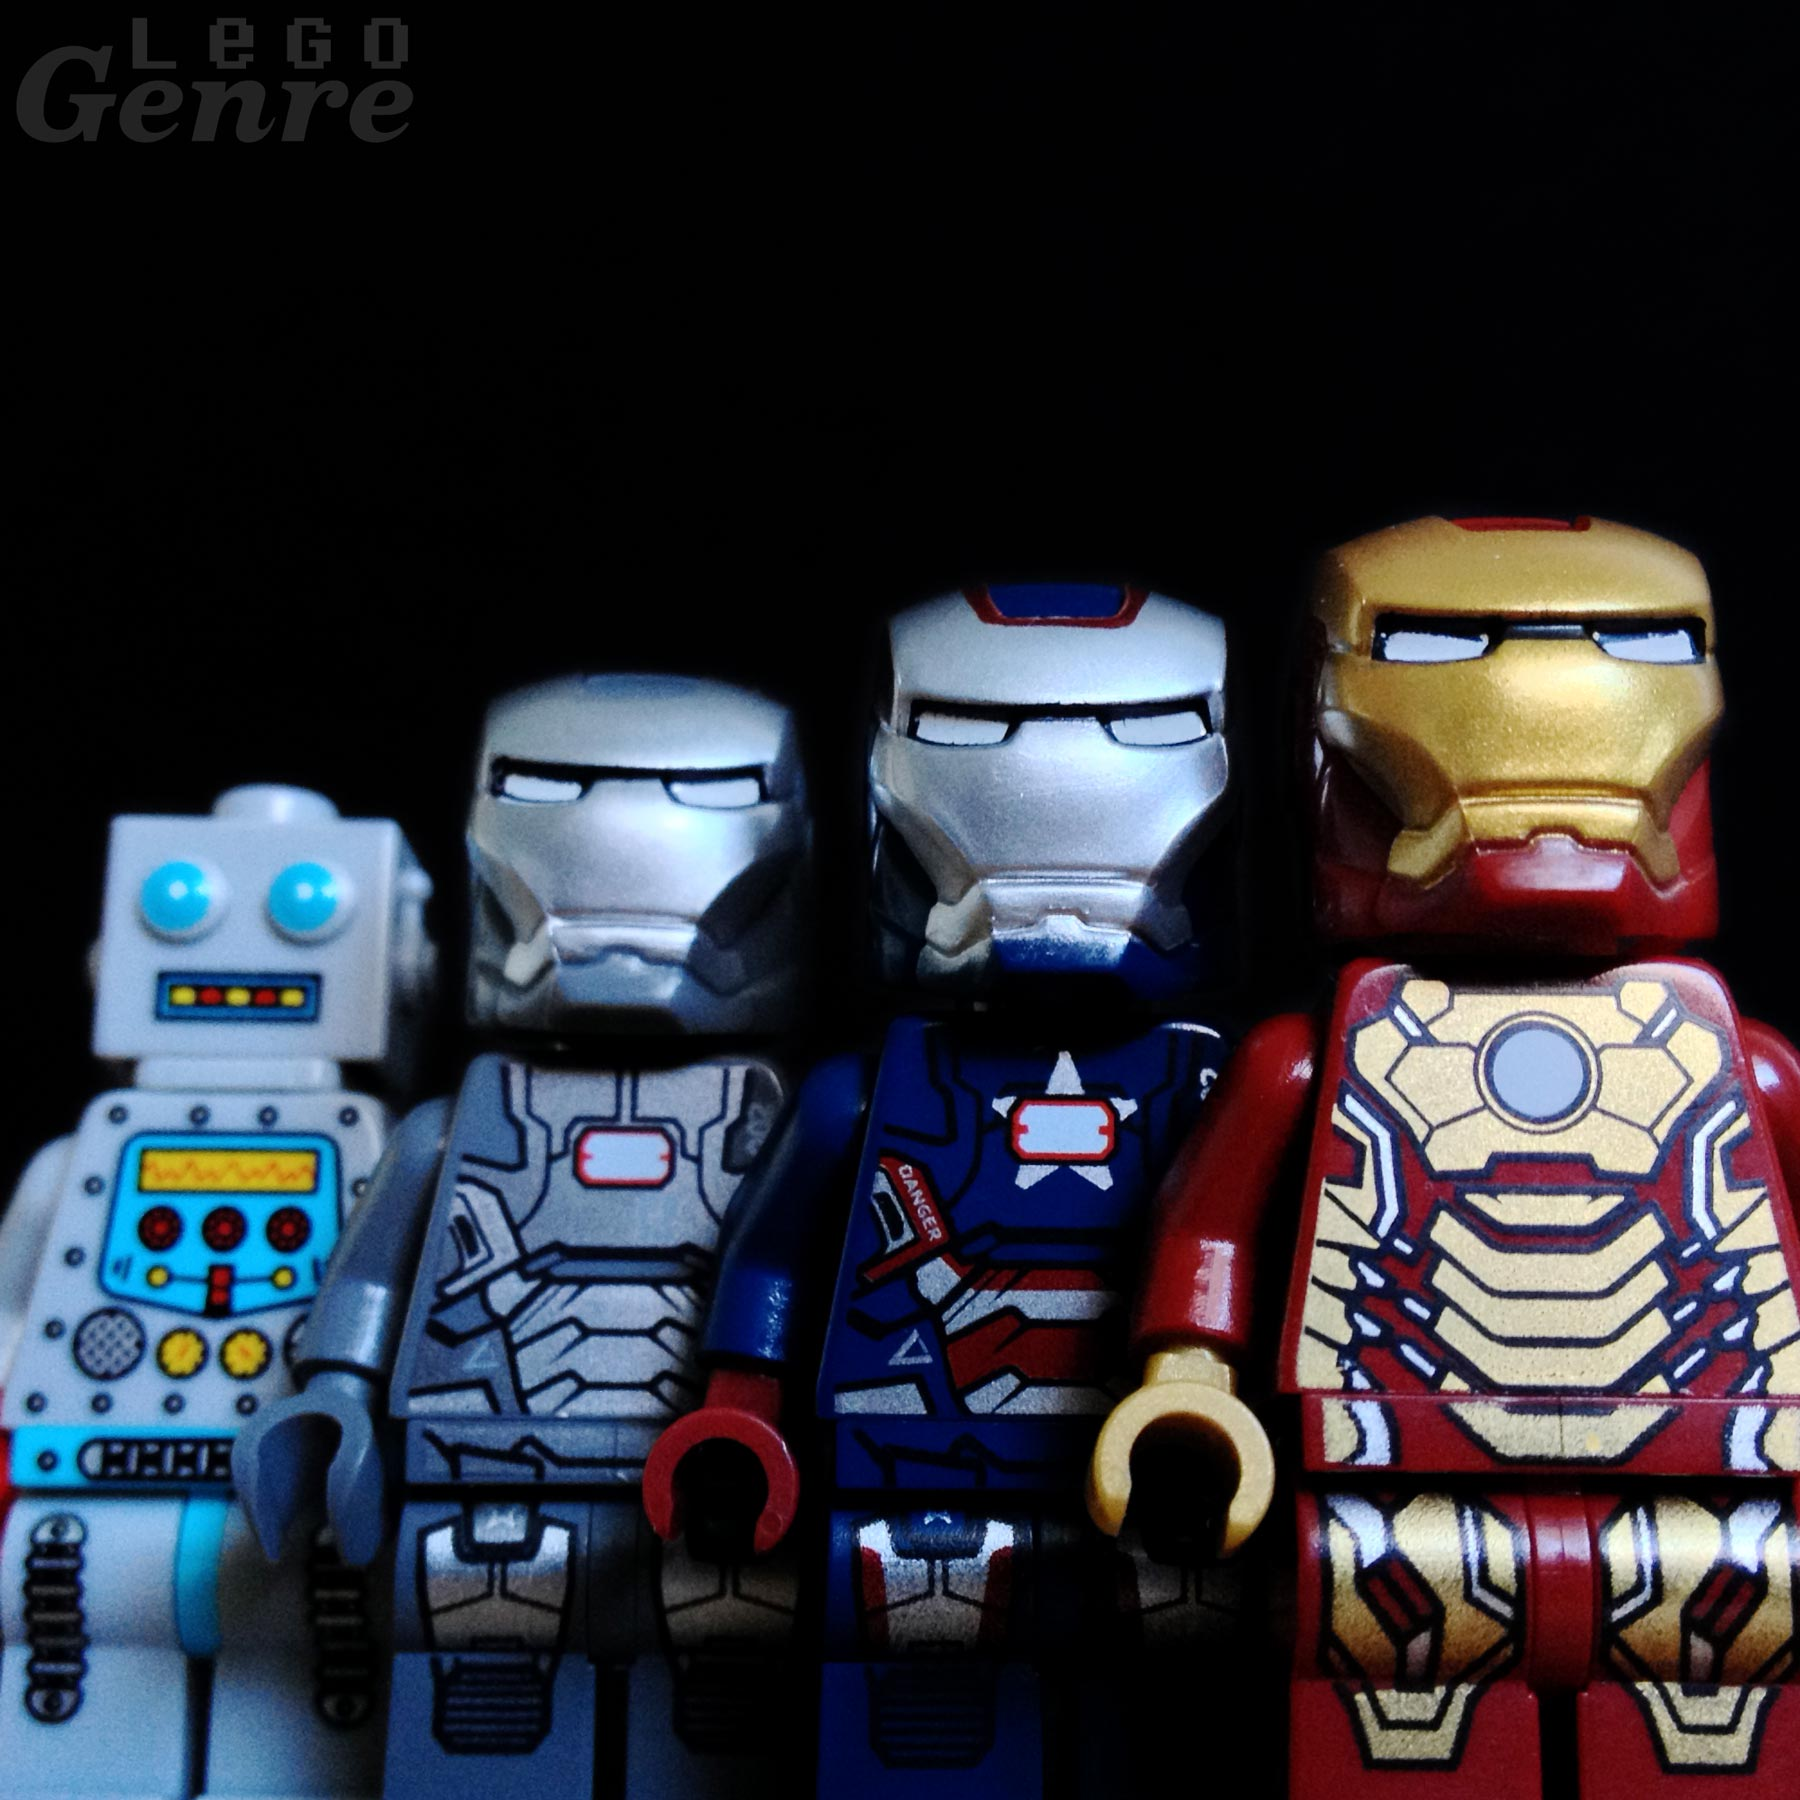 LegoGenre 00338: Iron Men